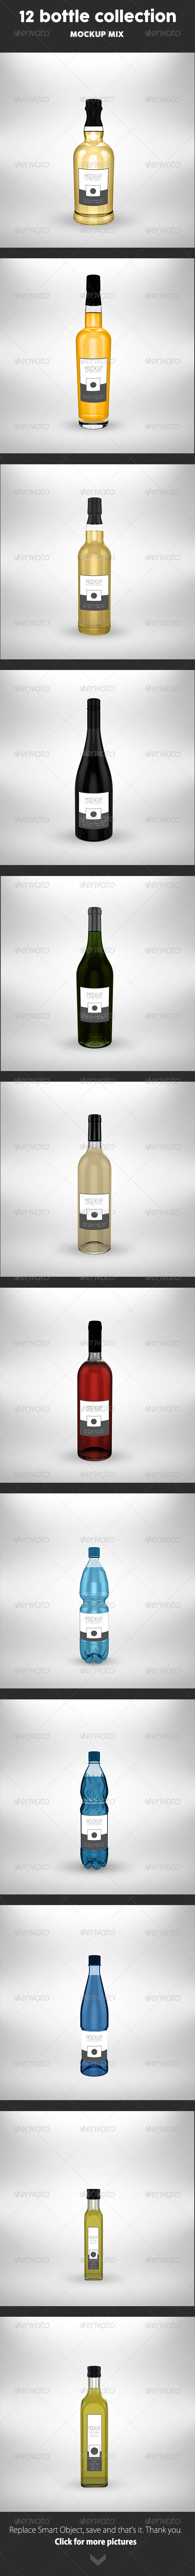 12 Bottle Collection Mock Up